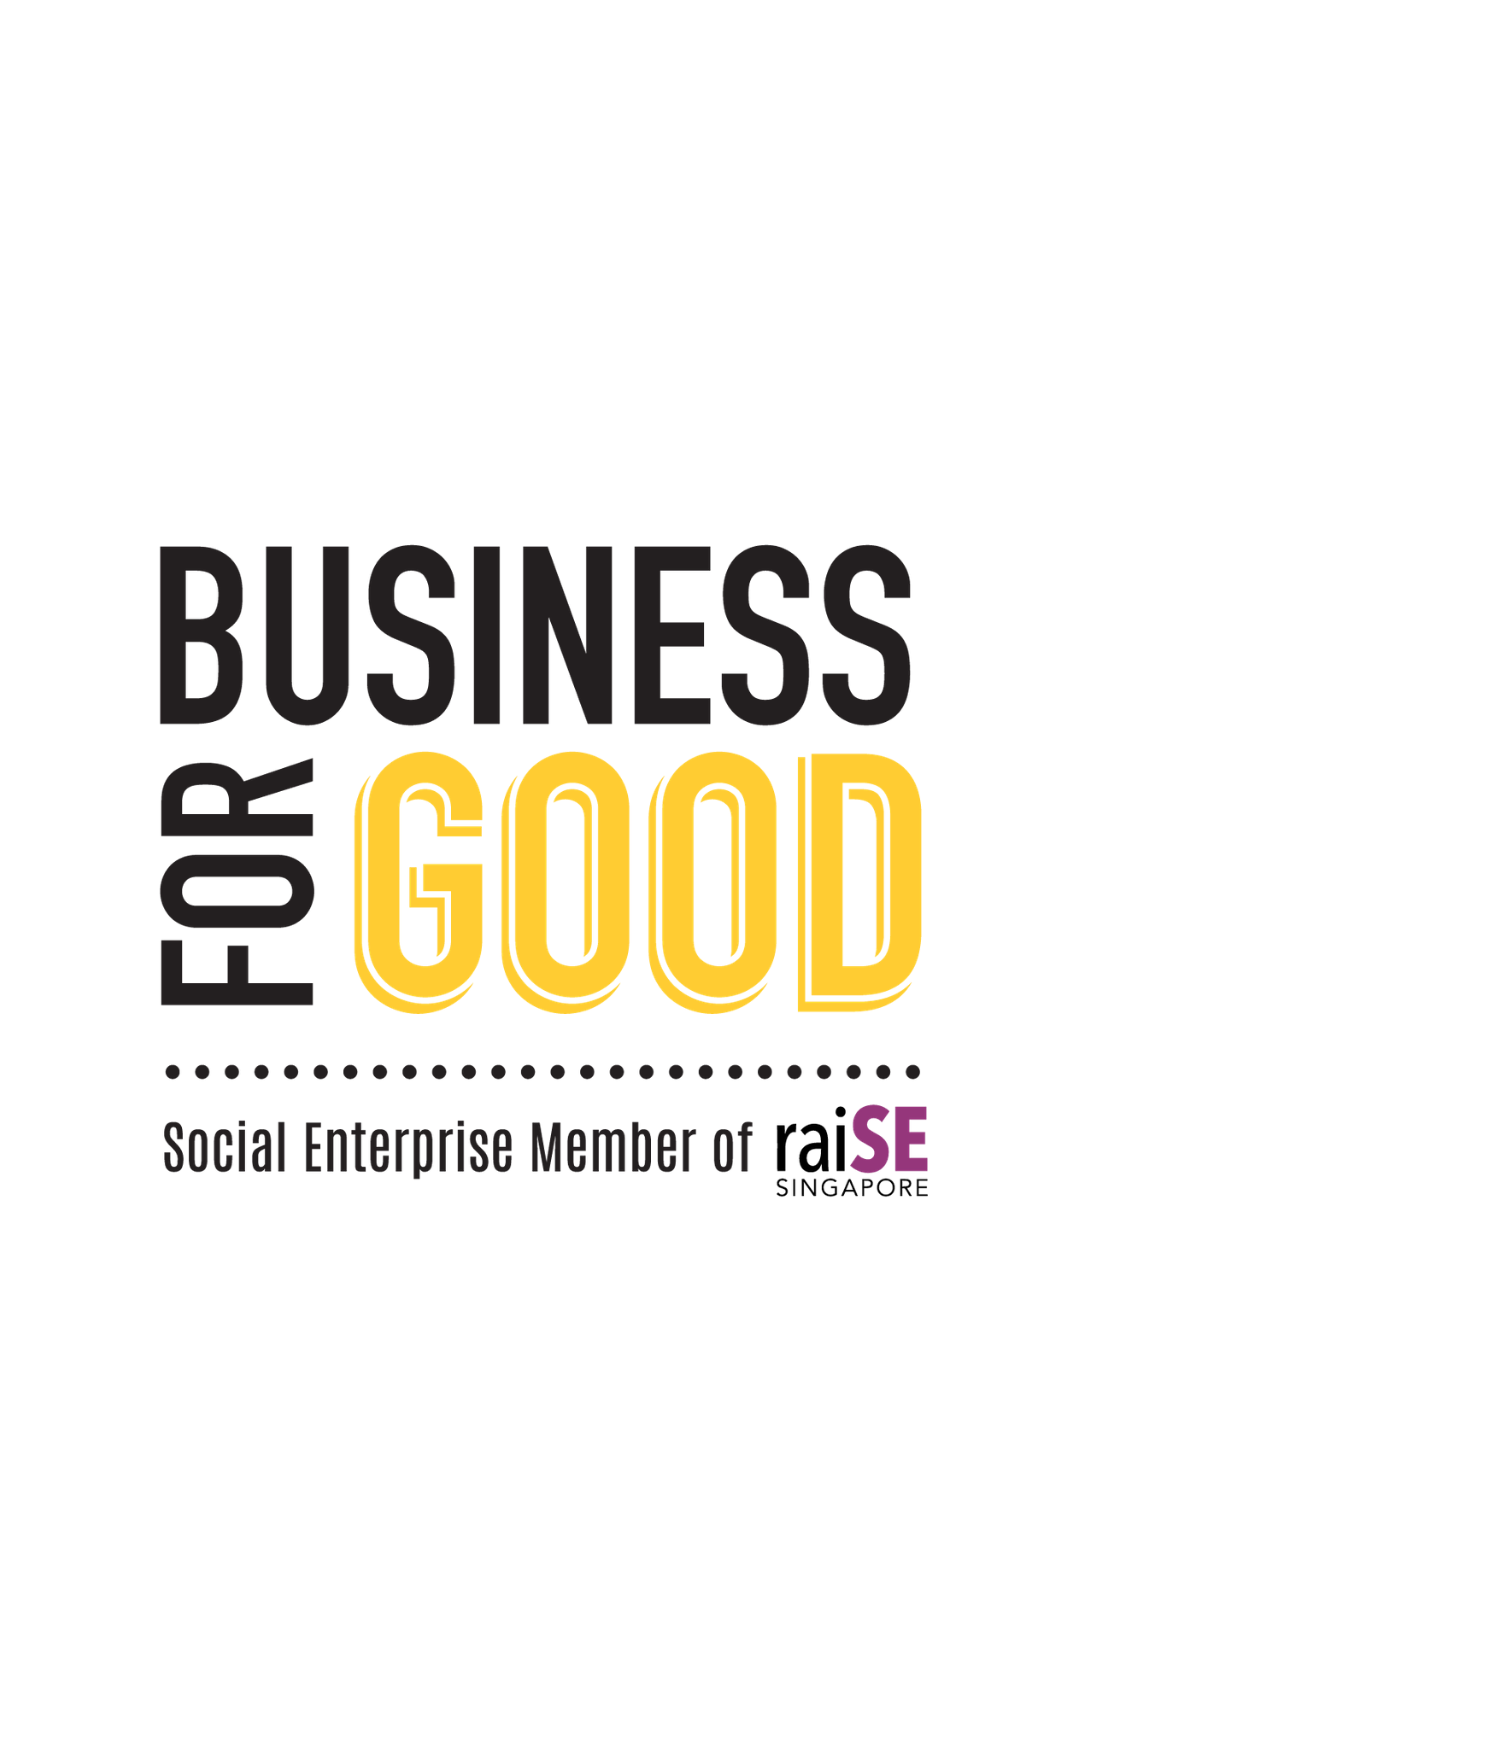 https://www.susgain.com/wp-content/uploads/2021/03/Business-for-Good_logo-3.png